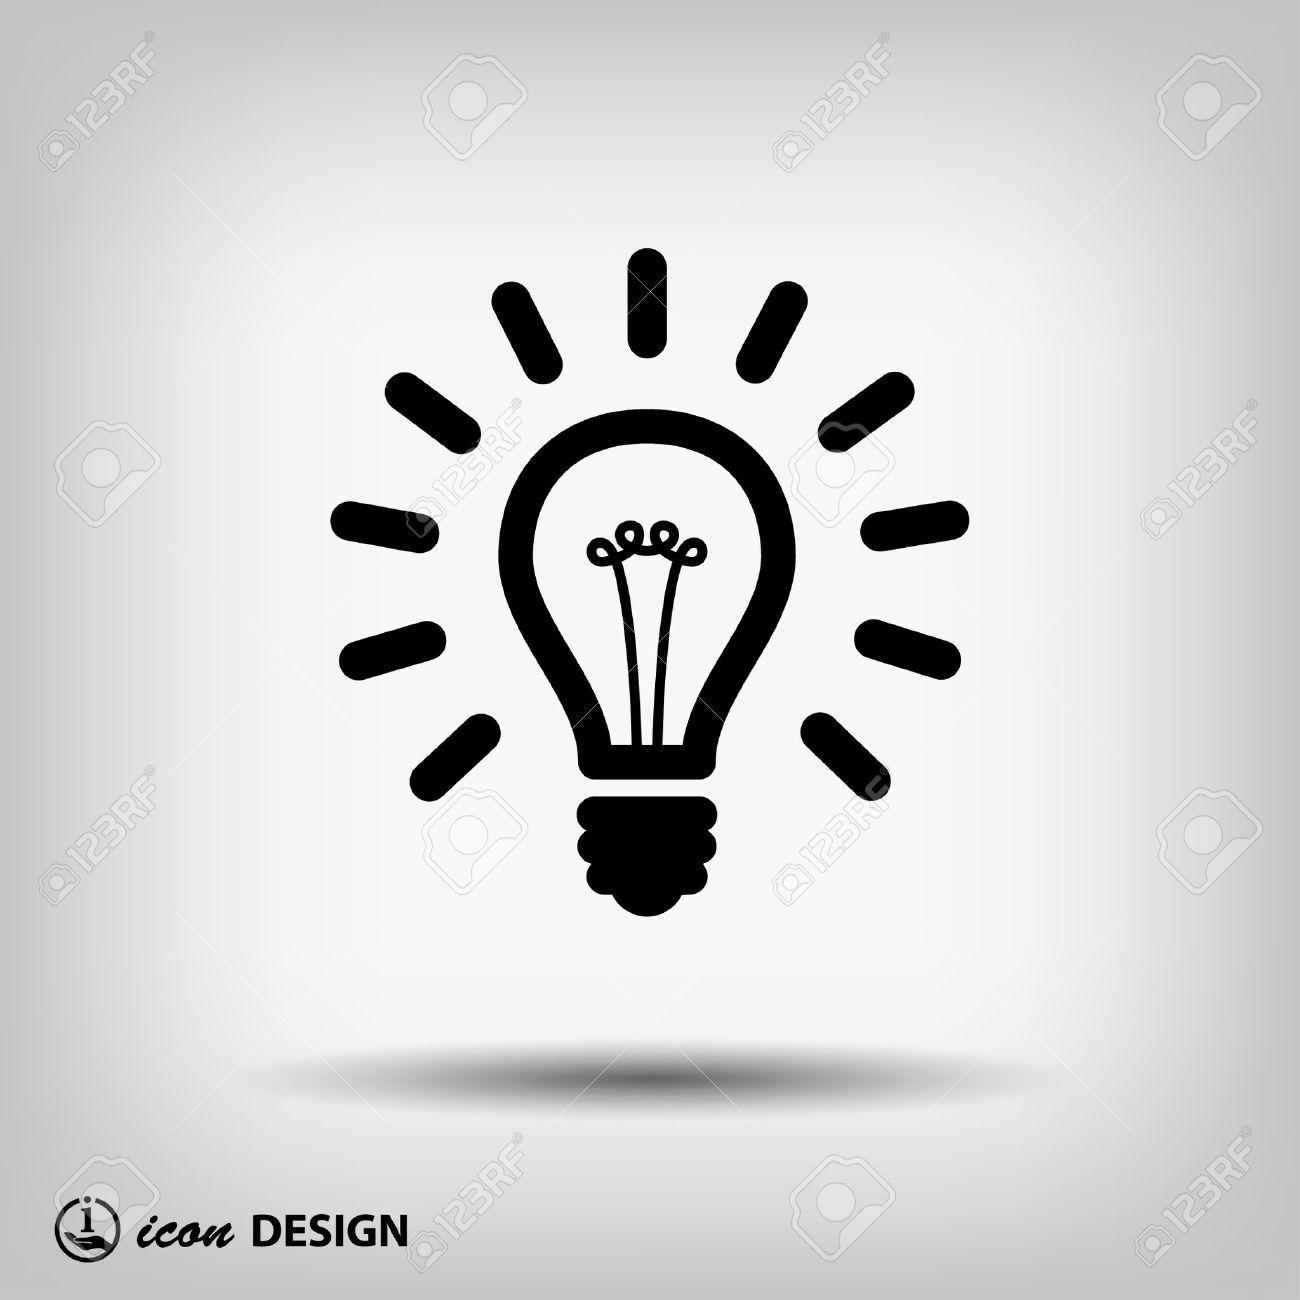 Pictograph of light bulb - 41441319